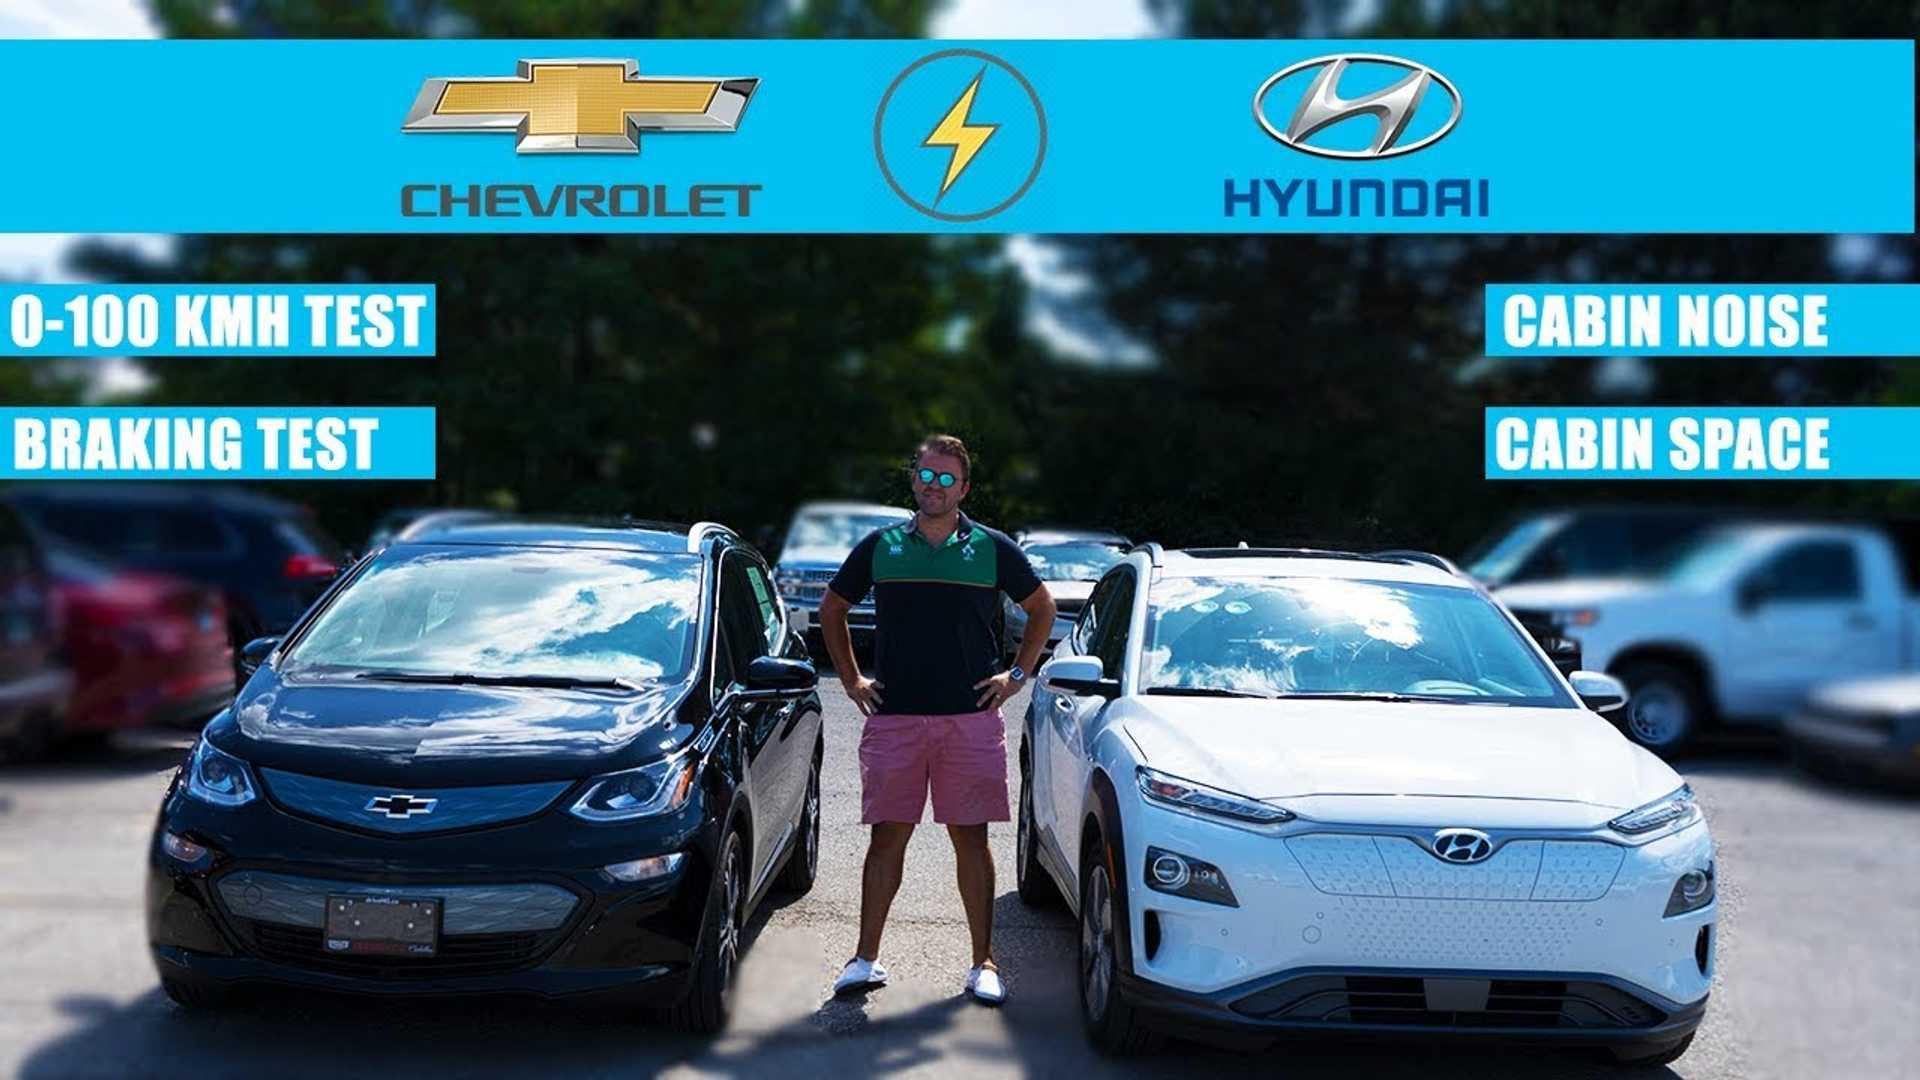 Hyundai Kona Electric Vs Chevy Bolt EV: Electric Crossovers Compared